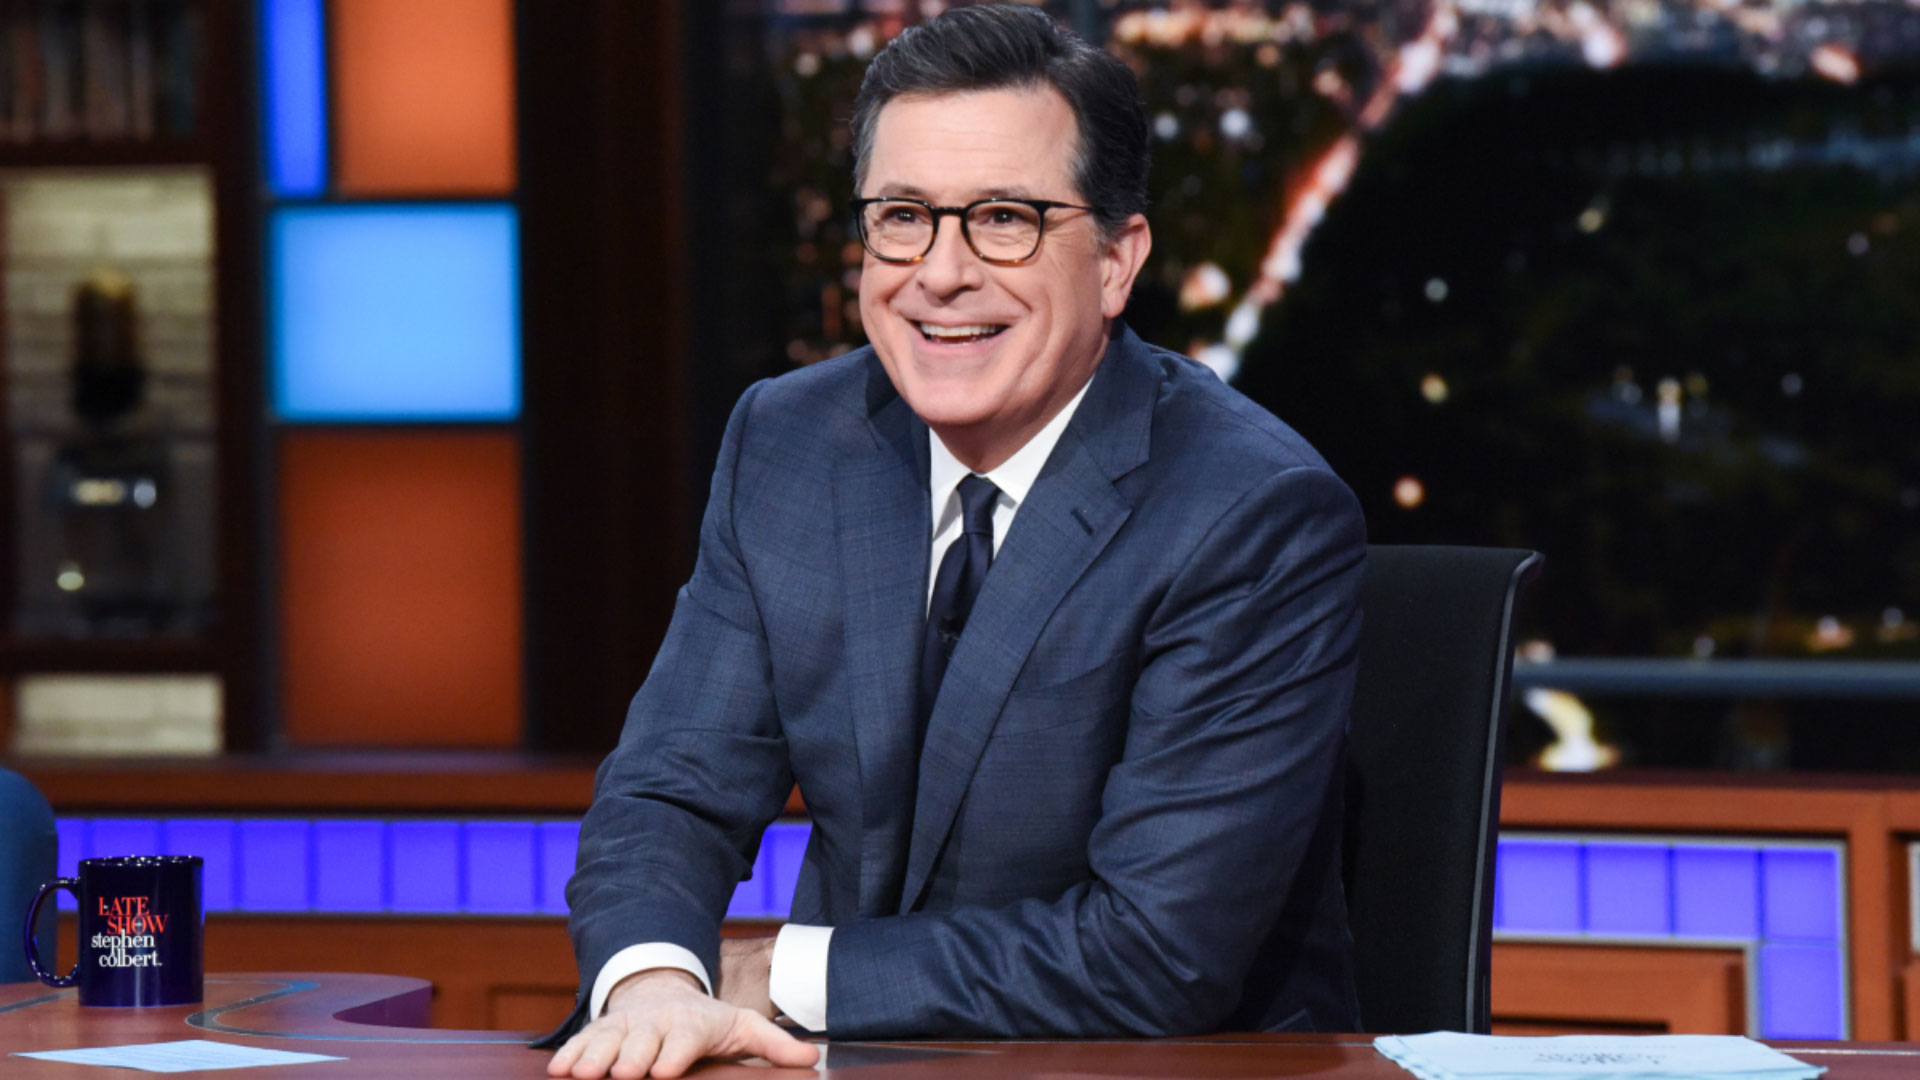 The Late Show To Broadcast Live Following The SOTU Address On Feb. 5